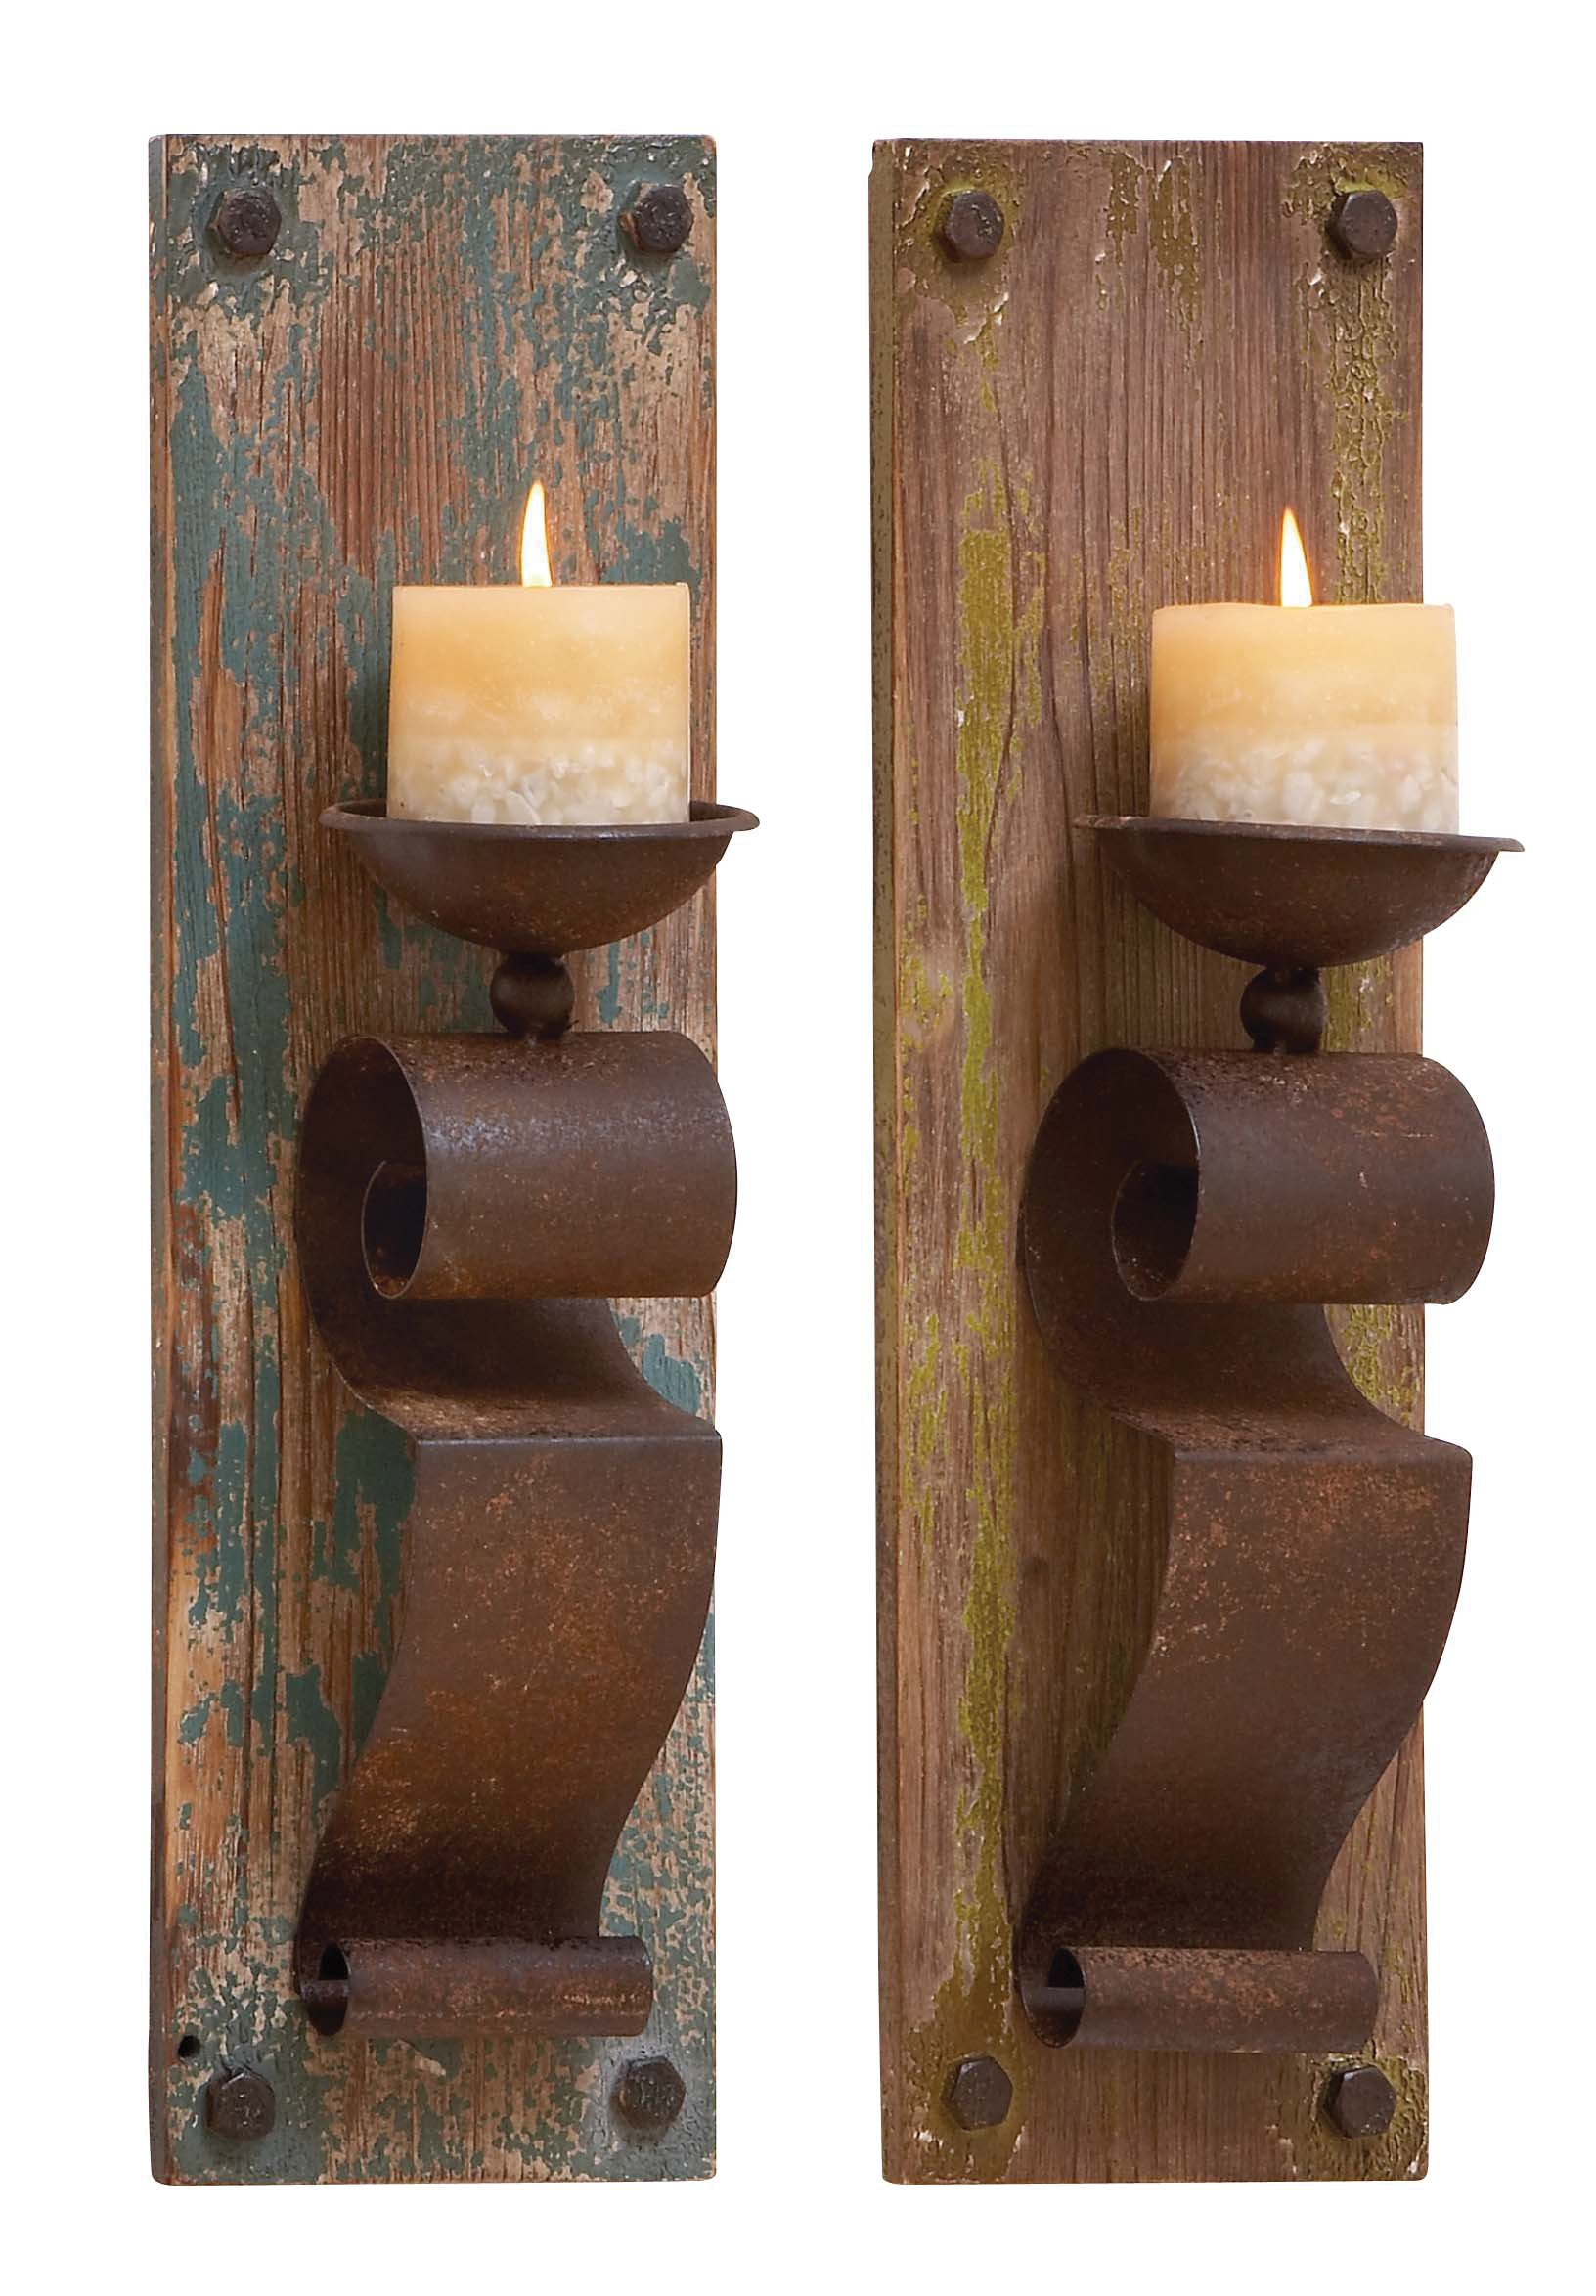 Deco 79 Deco 79 Wood Candle Sconce, 6 x 19'', Assorted,(Pack of 2)